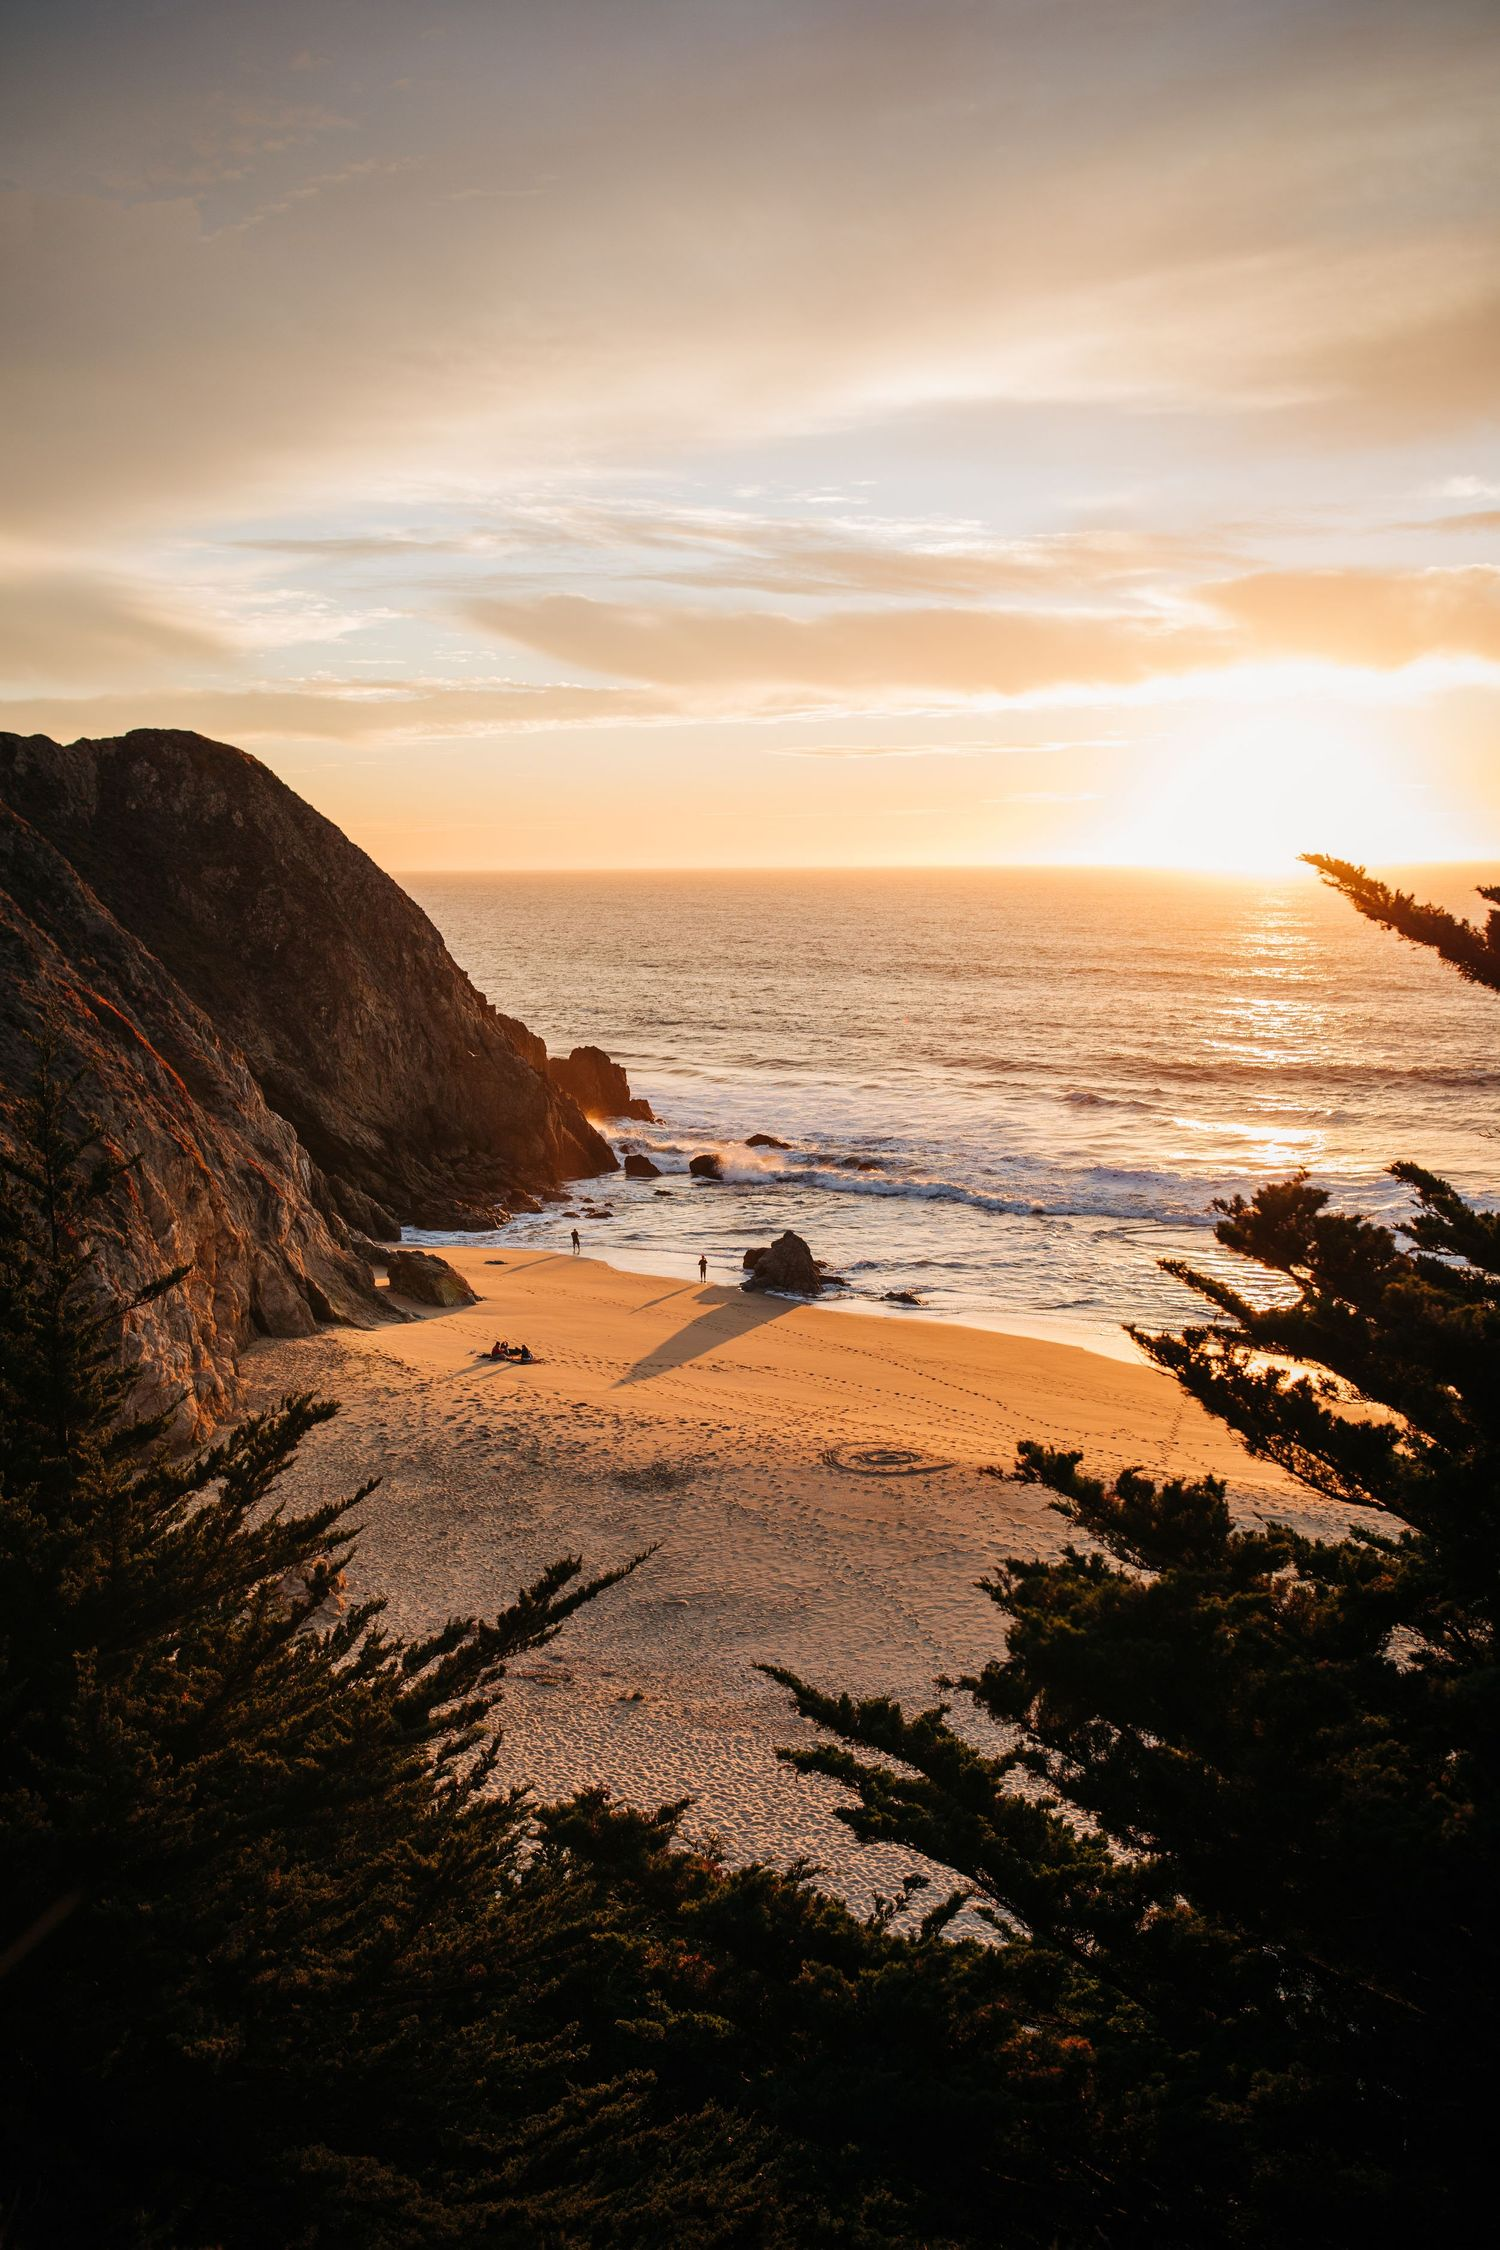 A view of sunset on a beautiful beach in Northern California.